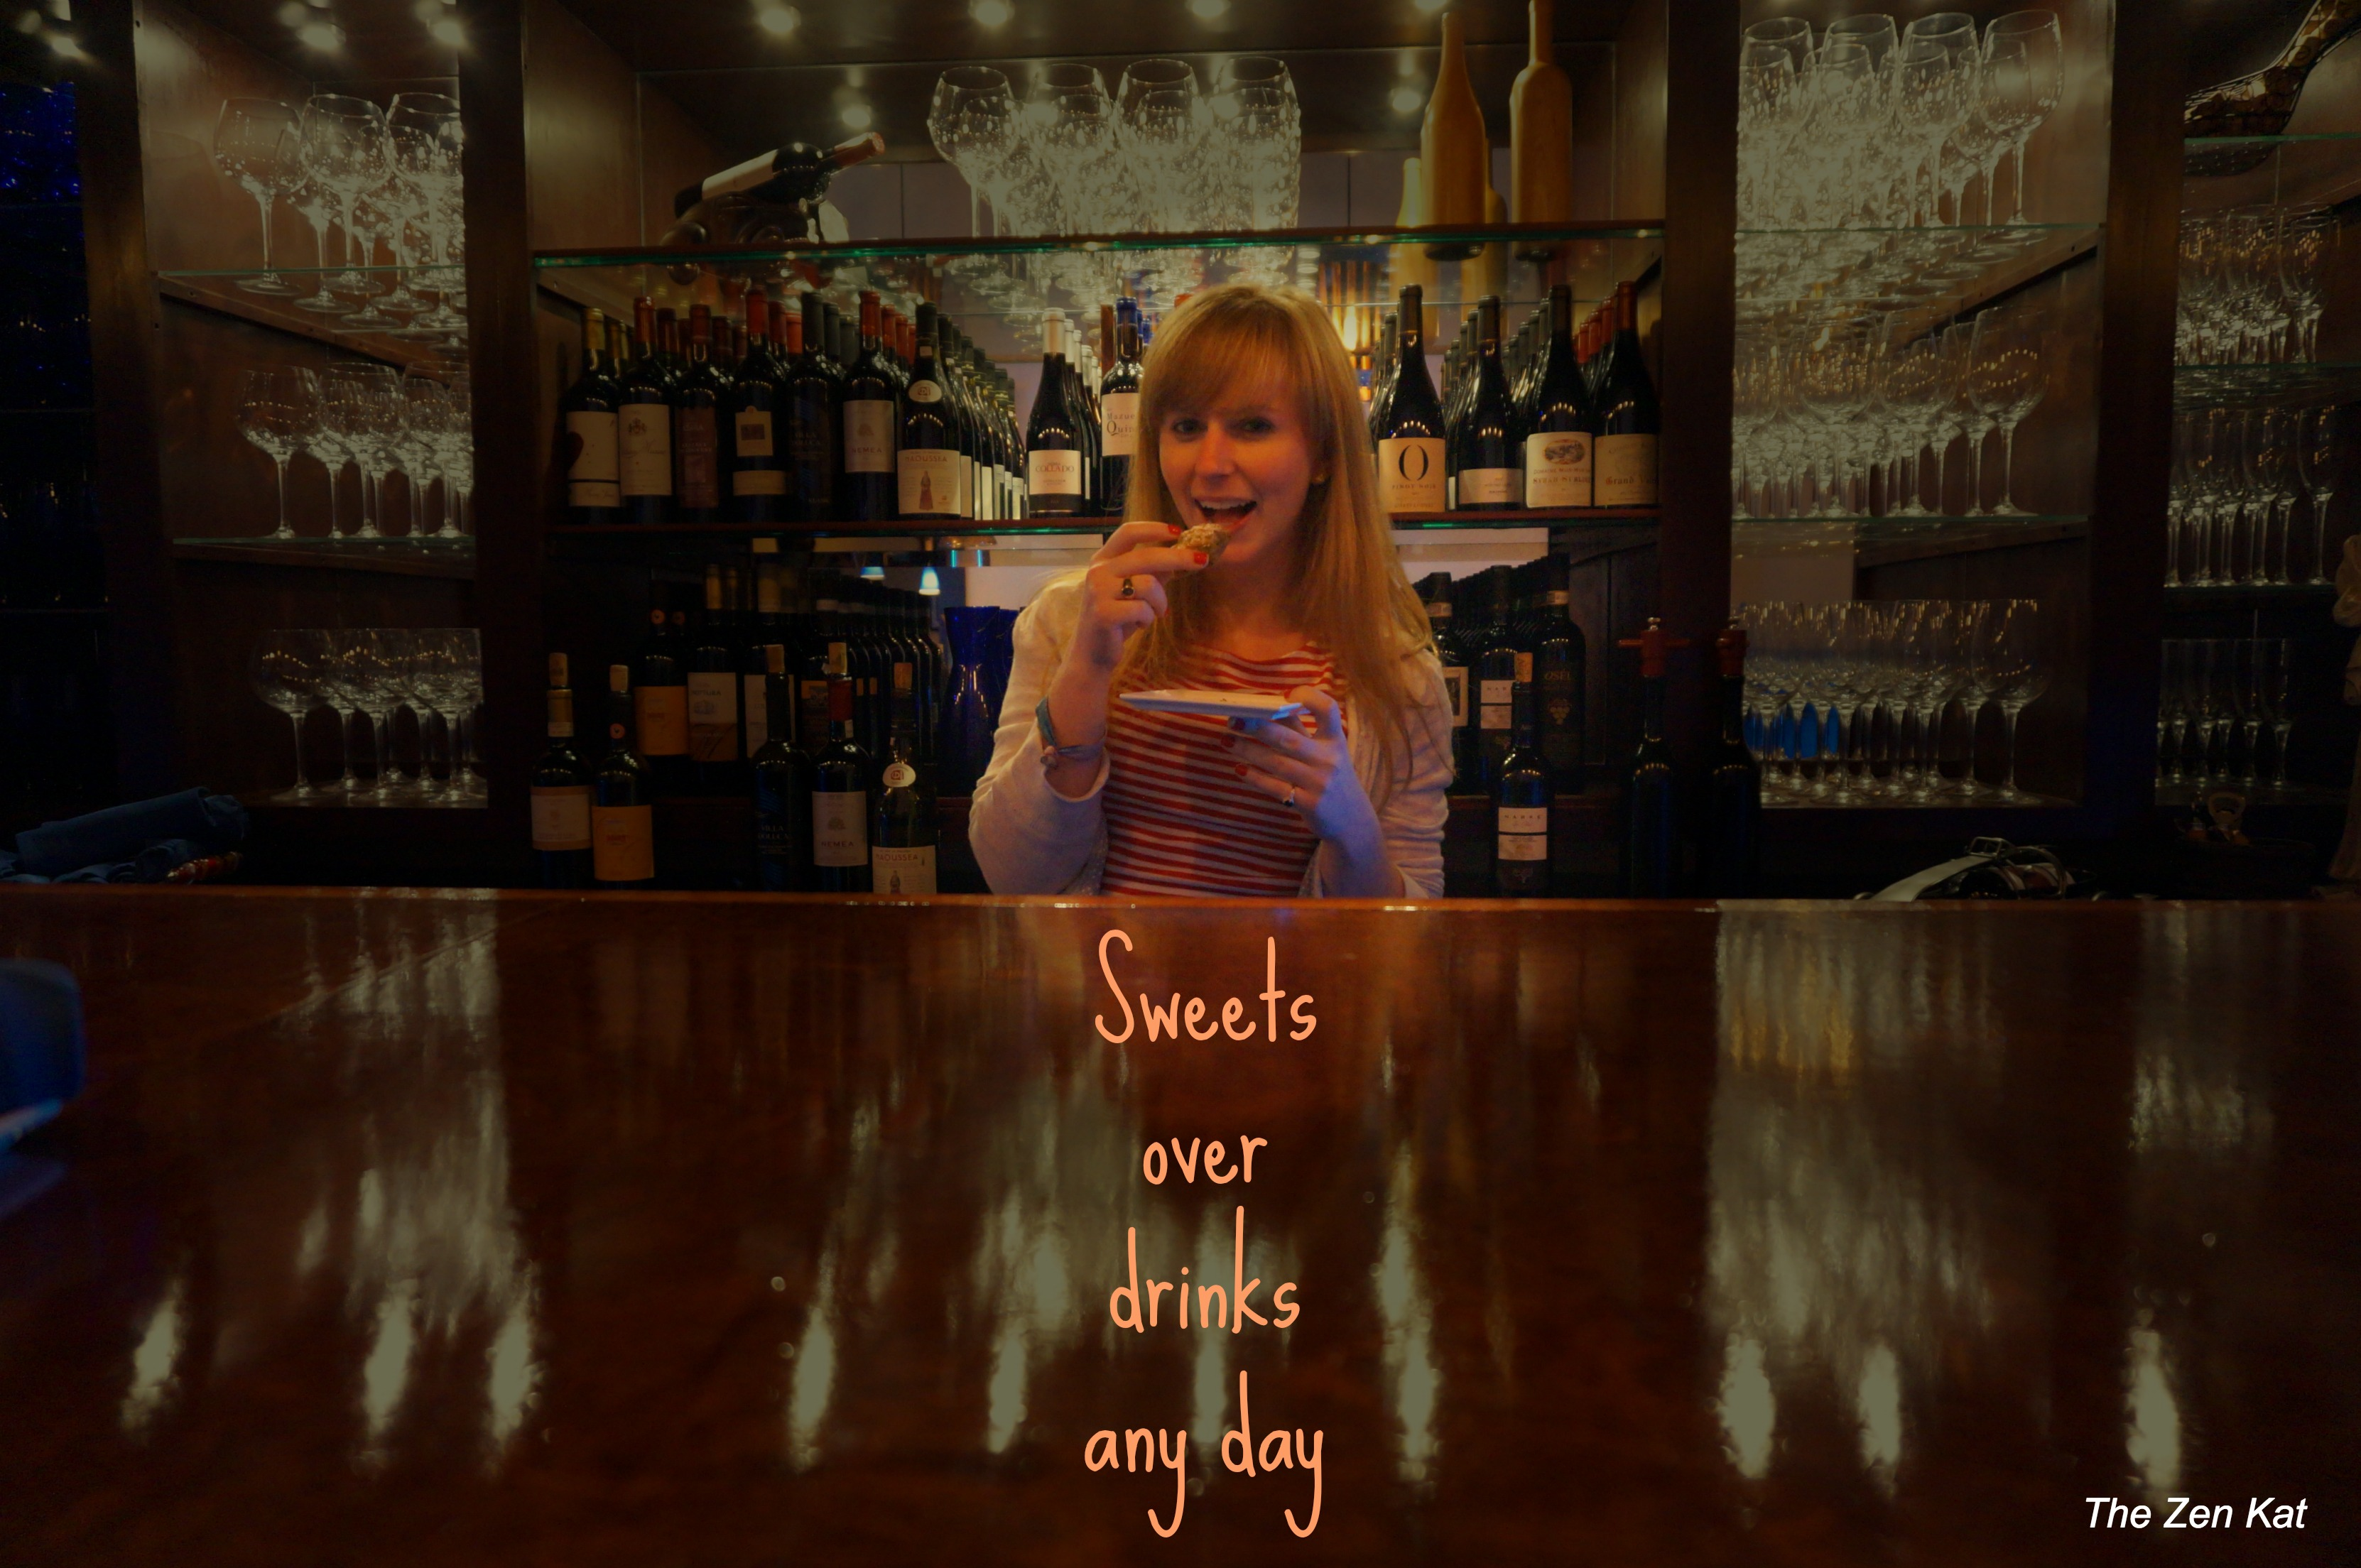 sweets over drinks